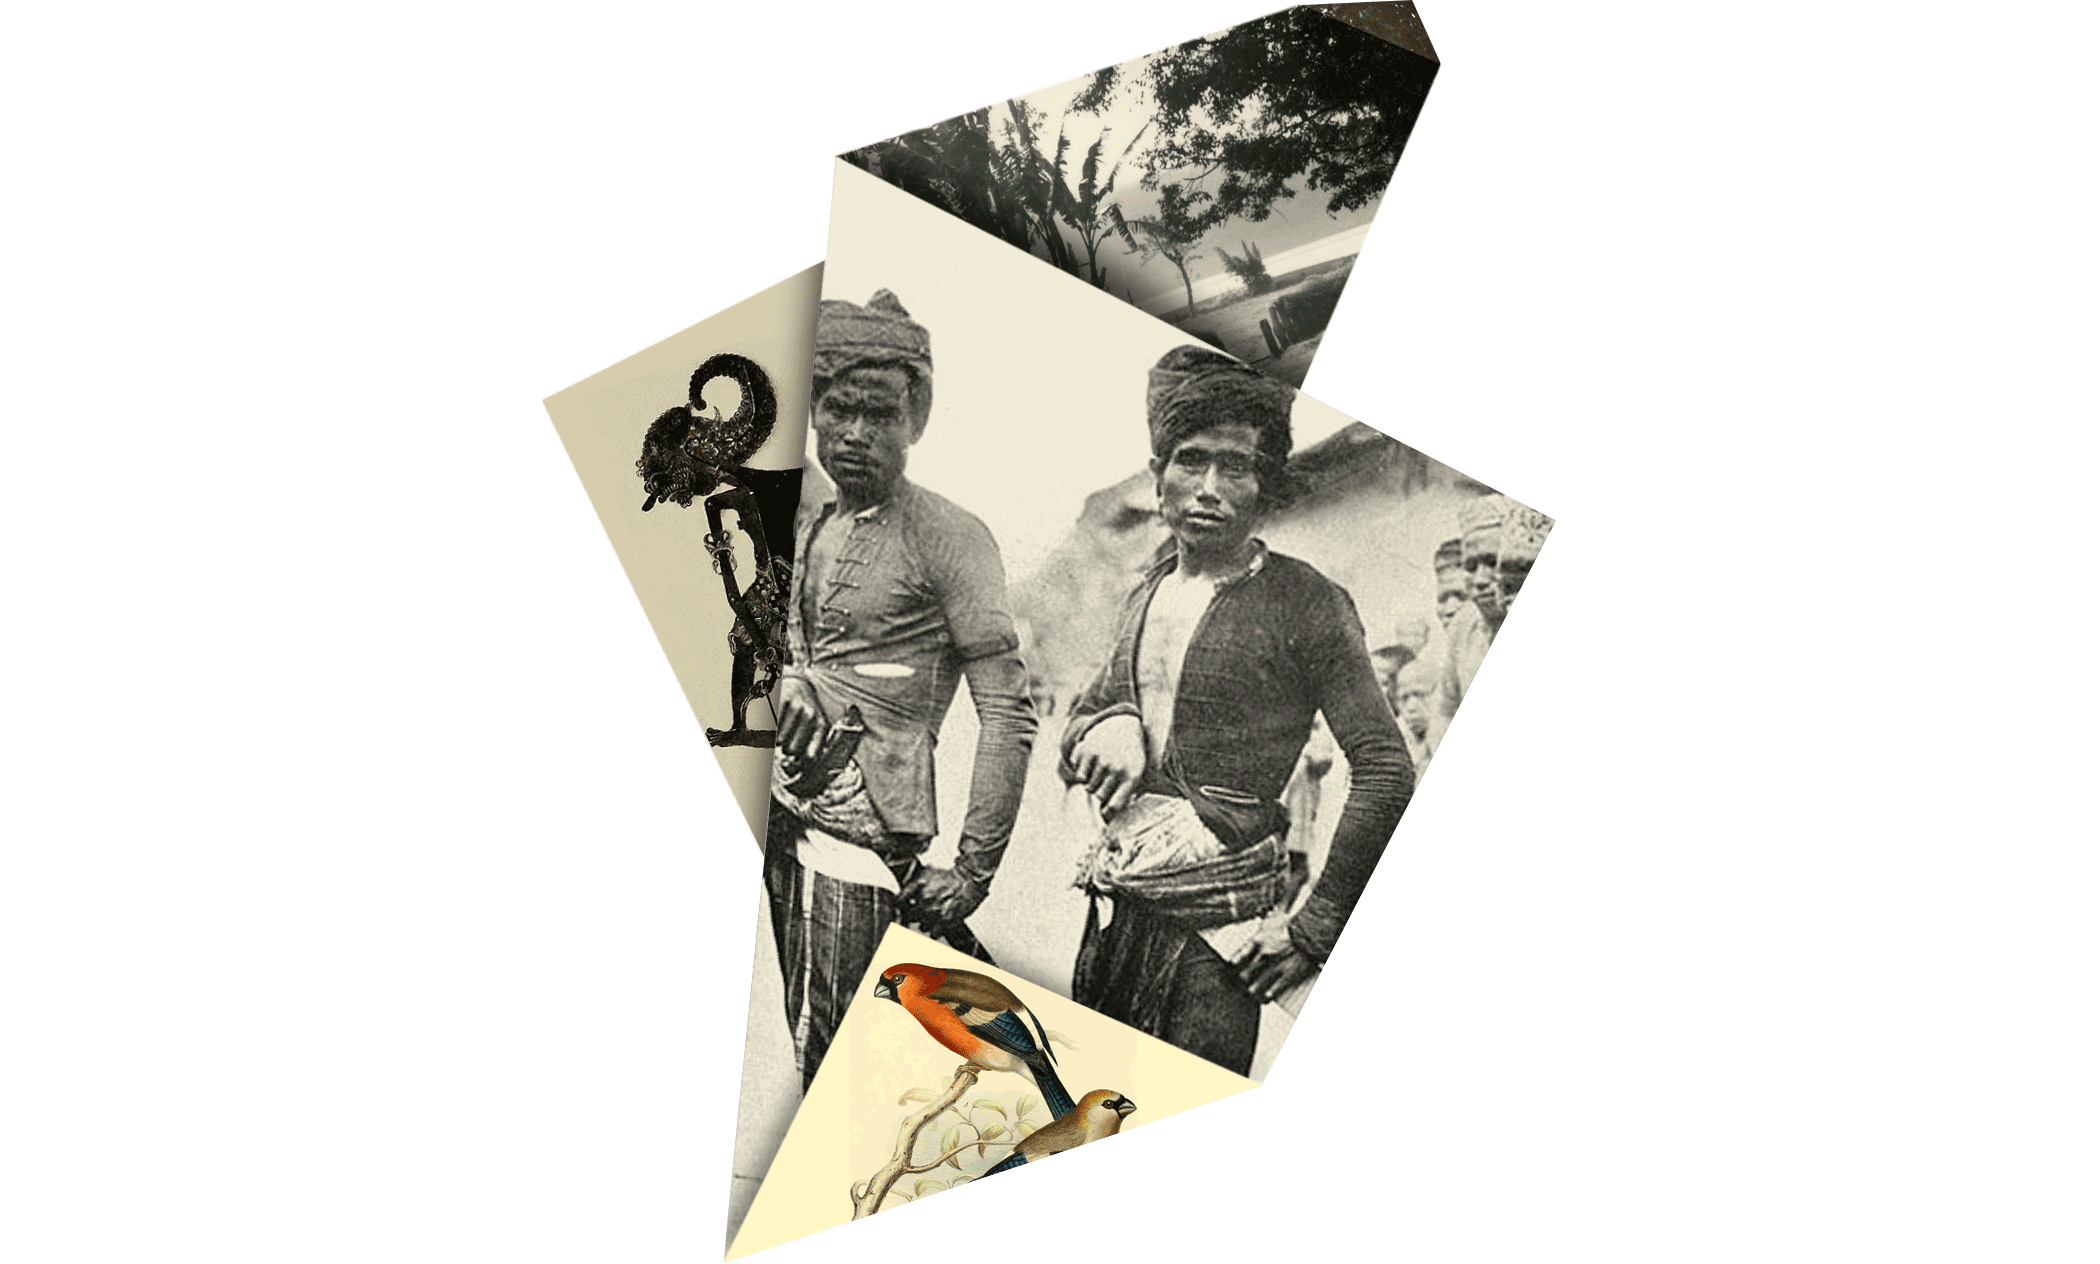 image of folded element Nederlandse studiegroep De Kris with two Sulu warriors, wayang doll, Borneo